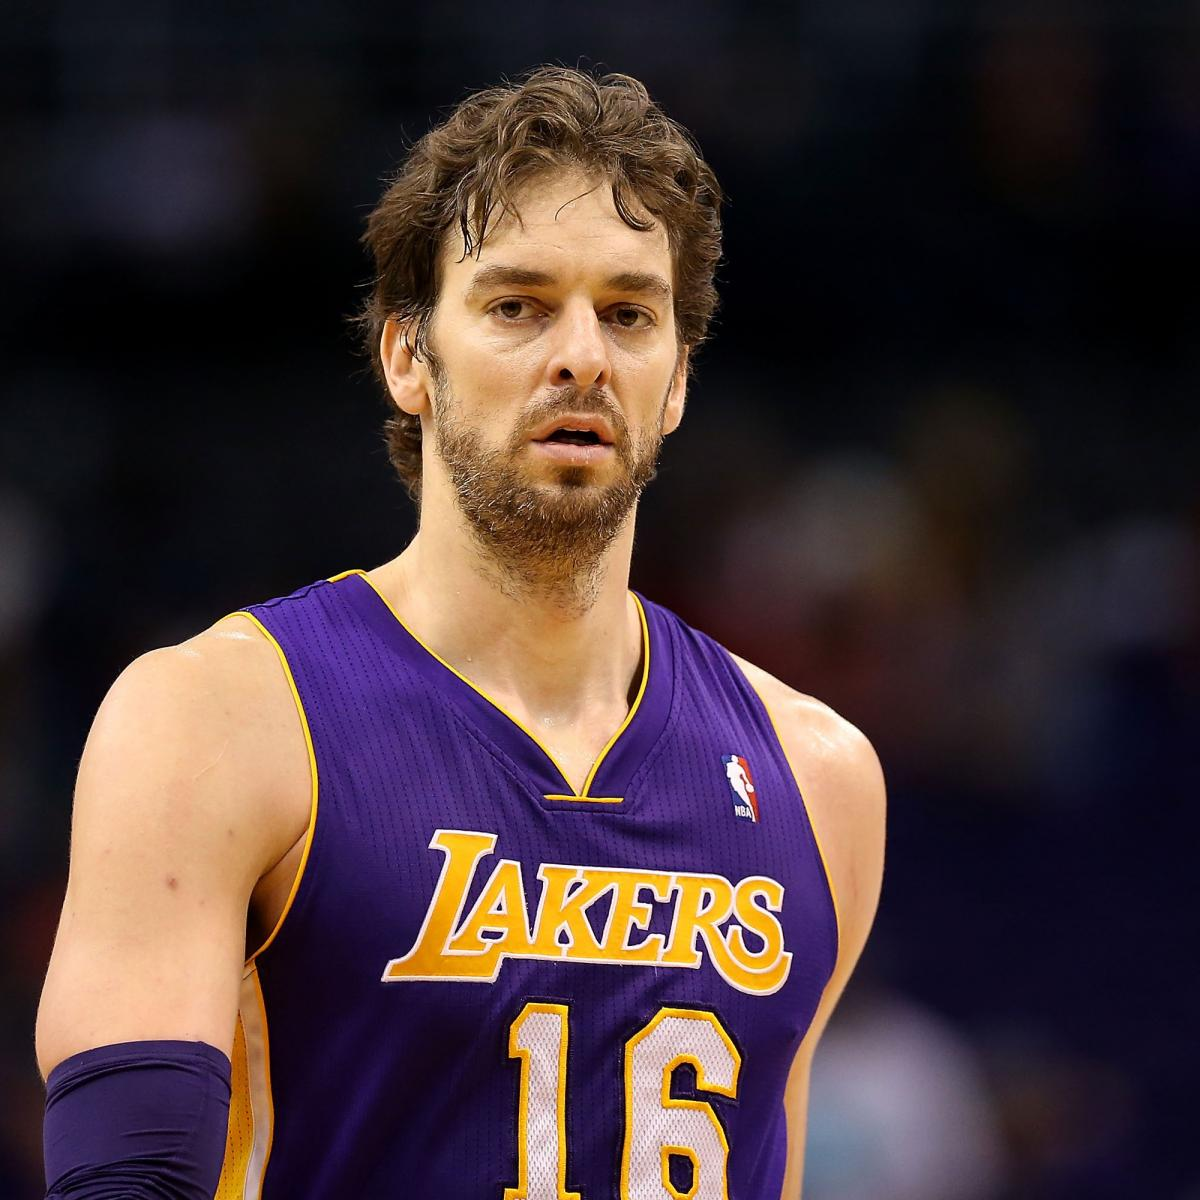 Lakers Rumors: Latest On Pau Gasol And Kobe Bryant's All